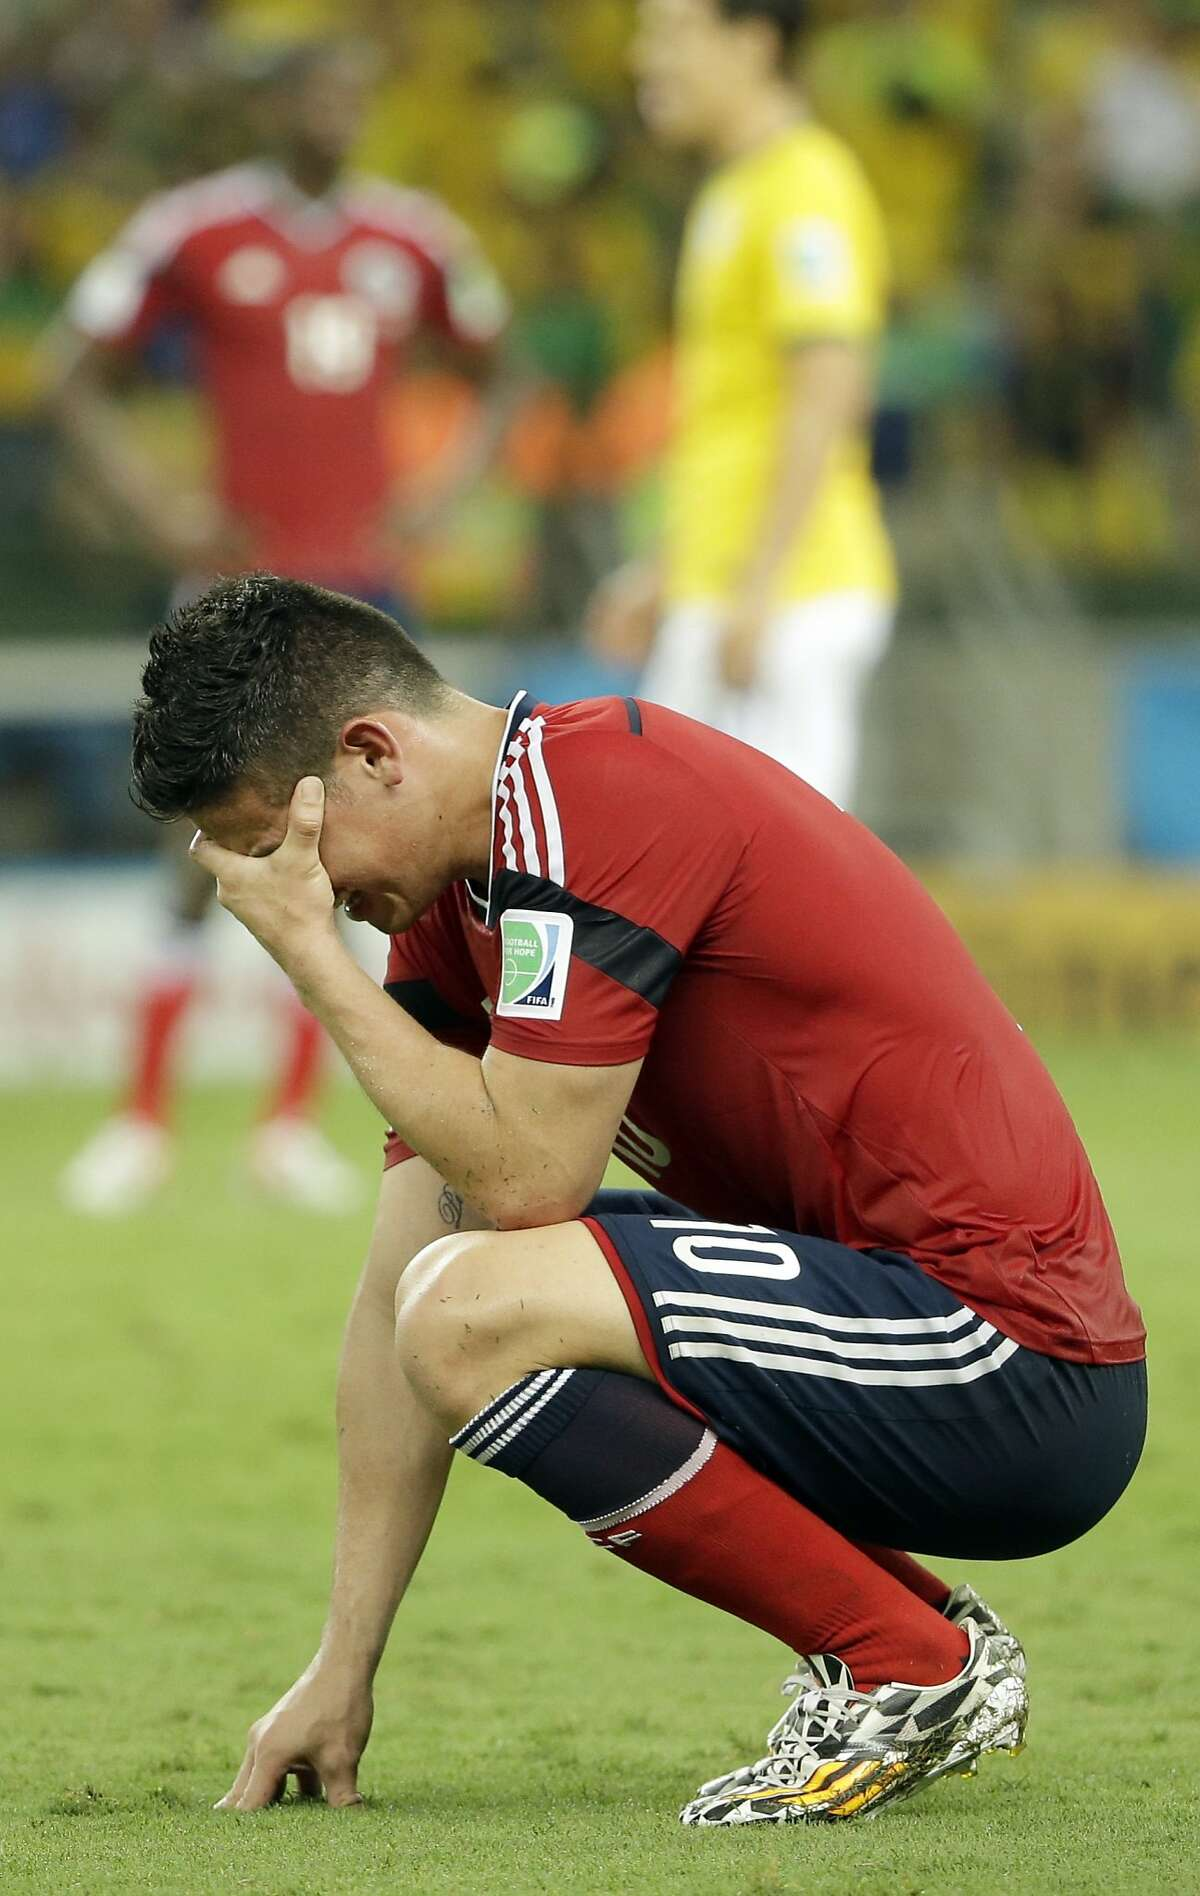 Colombia's James Rodriguez reacts at the end of the World Cup quarterfinal soccer match between Brazil and Colombia at the Arena Castelao in Fortaleza, Brazil, Friday, July 4, 2014. Brazil won 2-1 to reach the semifinals.(AP Photo/Hassan Ammar)